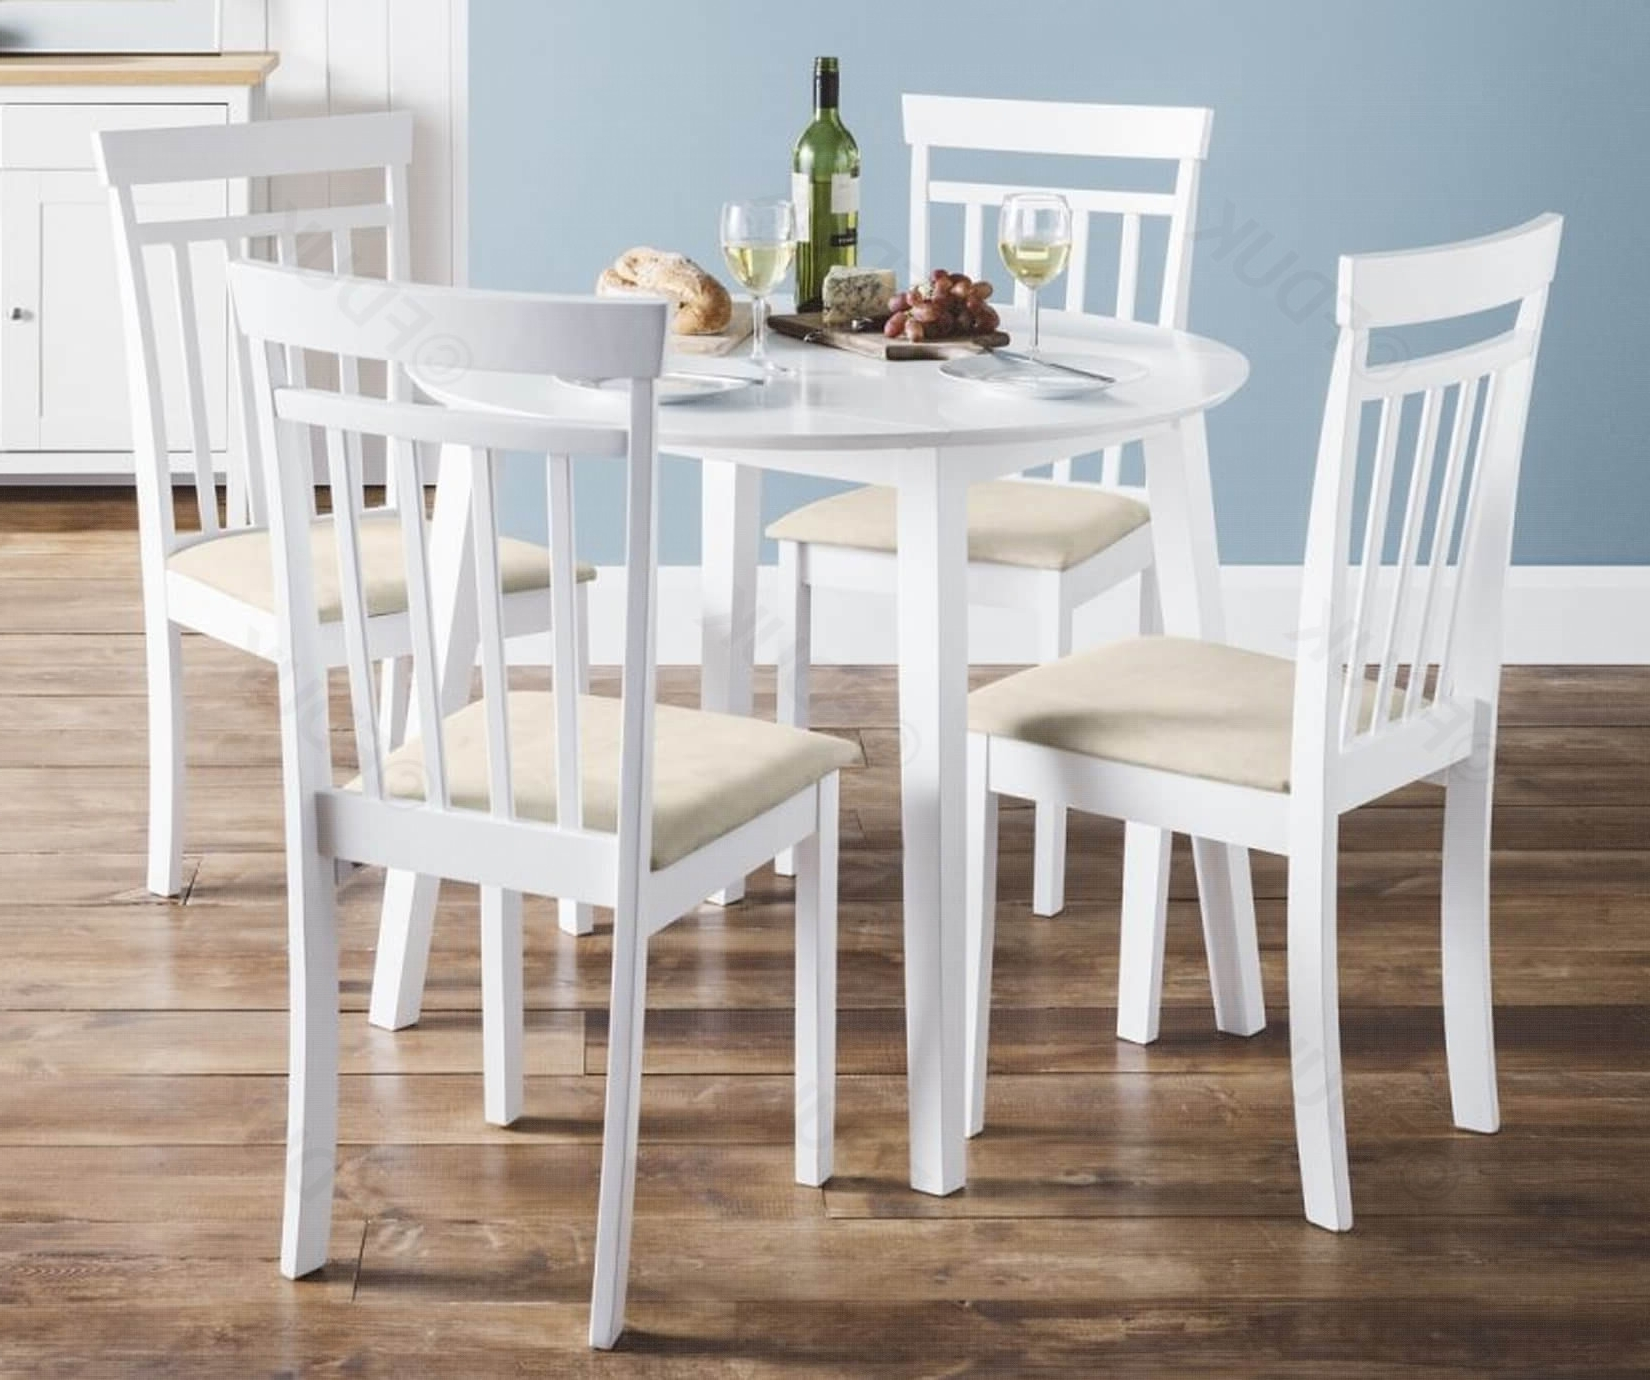 Coast White Drop Leaf Dining Table With 2 Chairs (View 22 of 25)